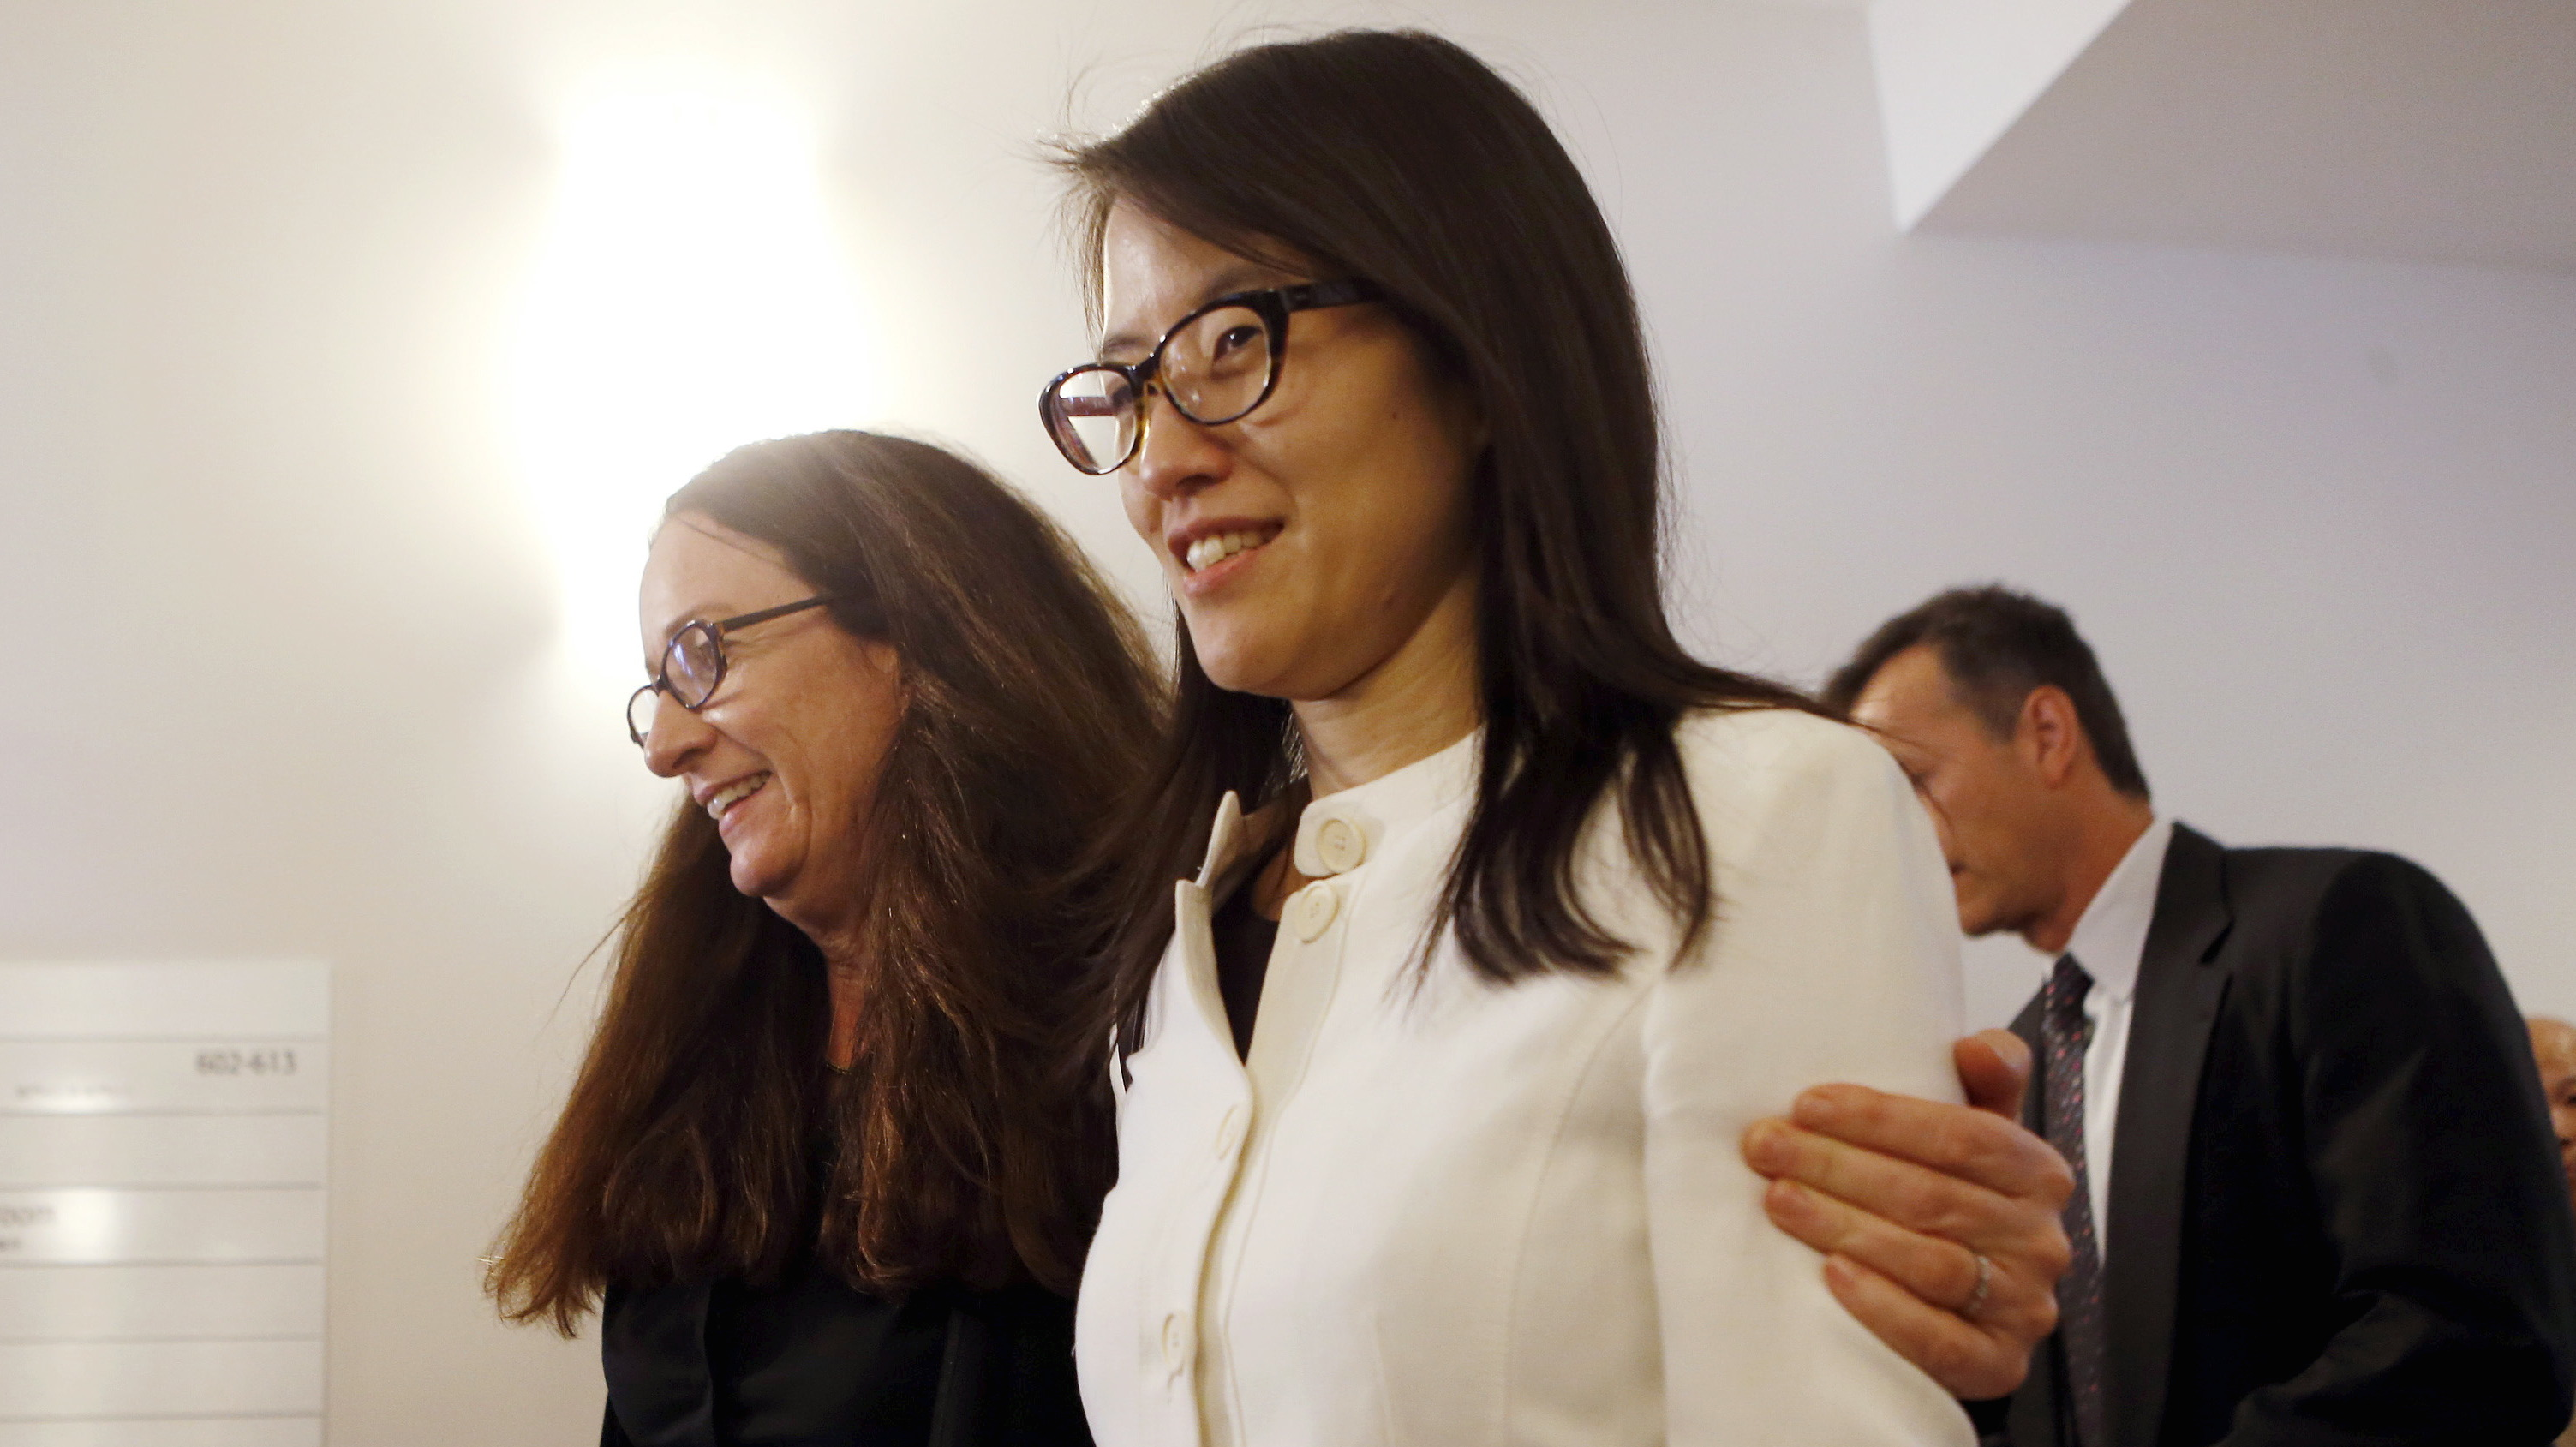 Ellen Pao and attorney Therese Lawless leave the courtroom after losing in Pao's high profile gender discrimination lawsuit against venture capital firm Kleiner, Perkins, Caufield and Byers in San Francisco, California March 27, 2015.